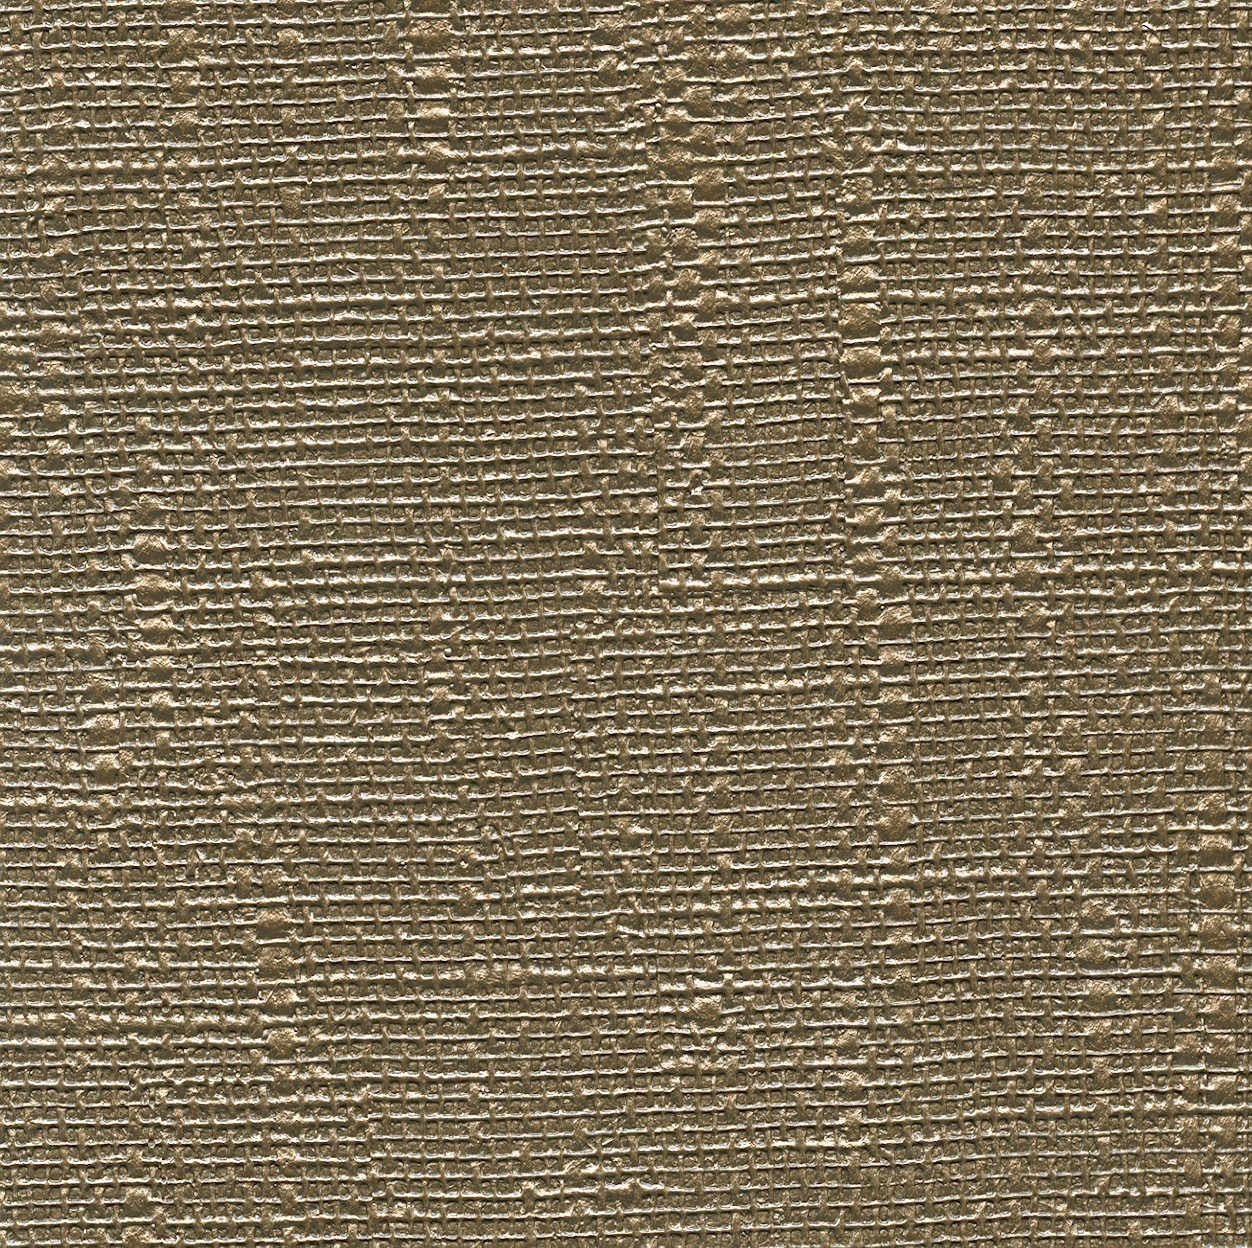 Artemis Interieur Wallcoverings Gt Webshop Artemis Kobe Interior Design